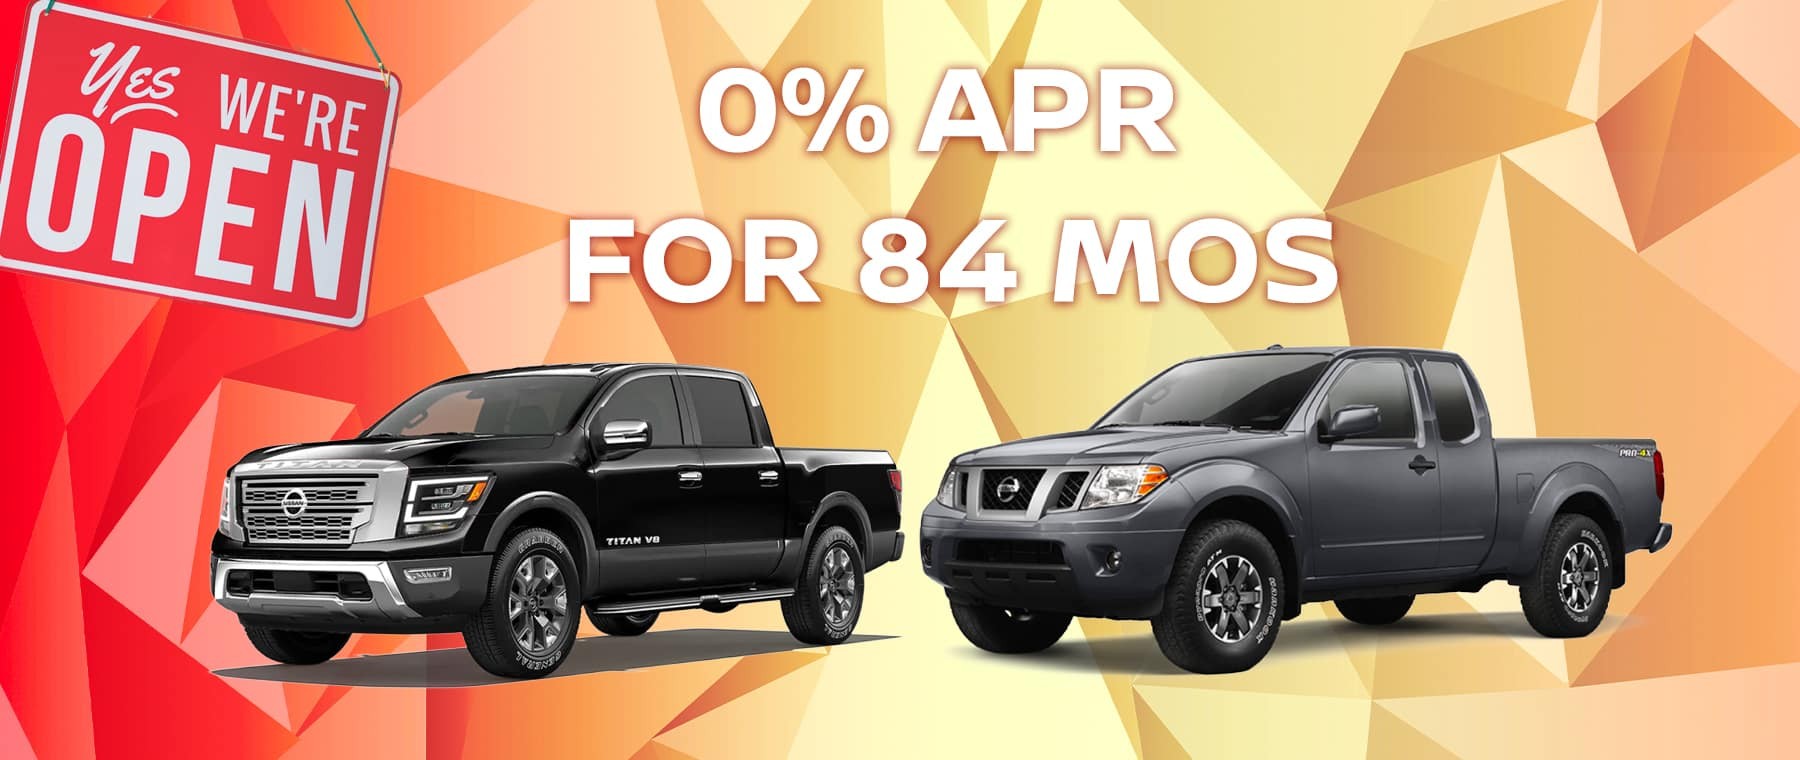 0% APR for 84 mos